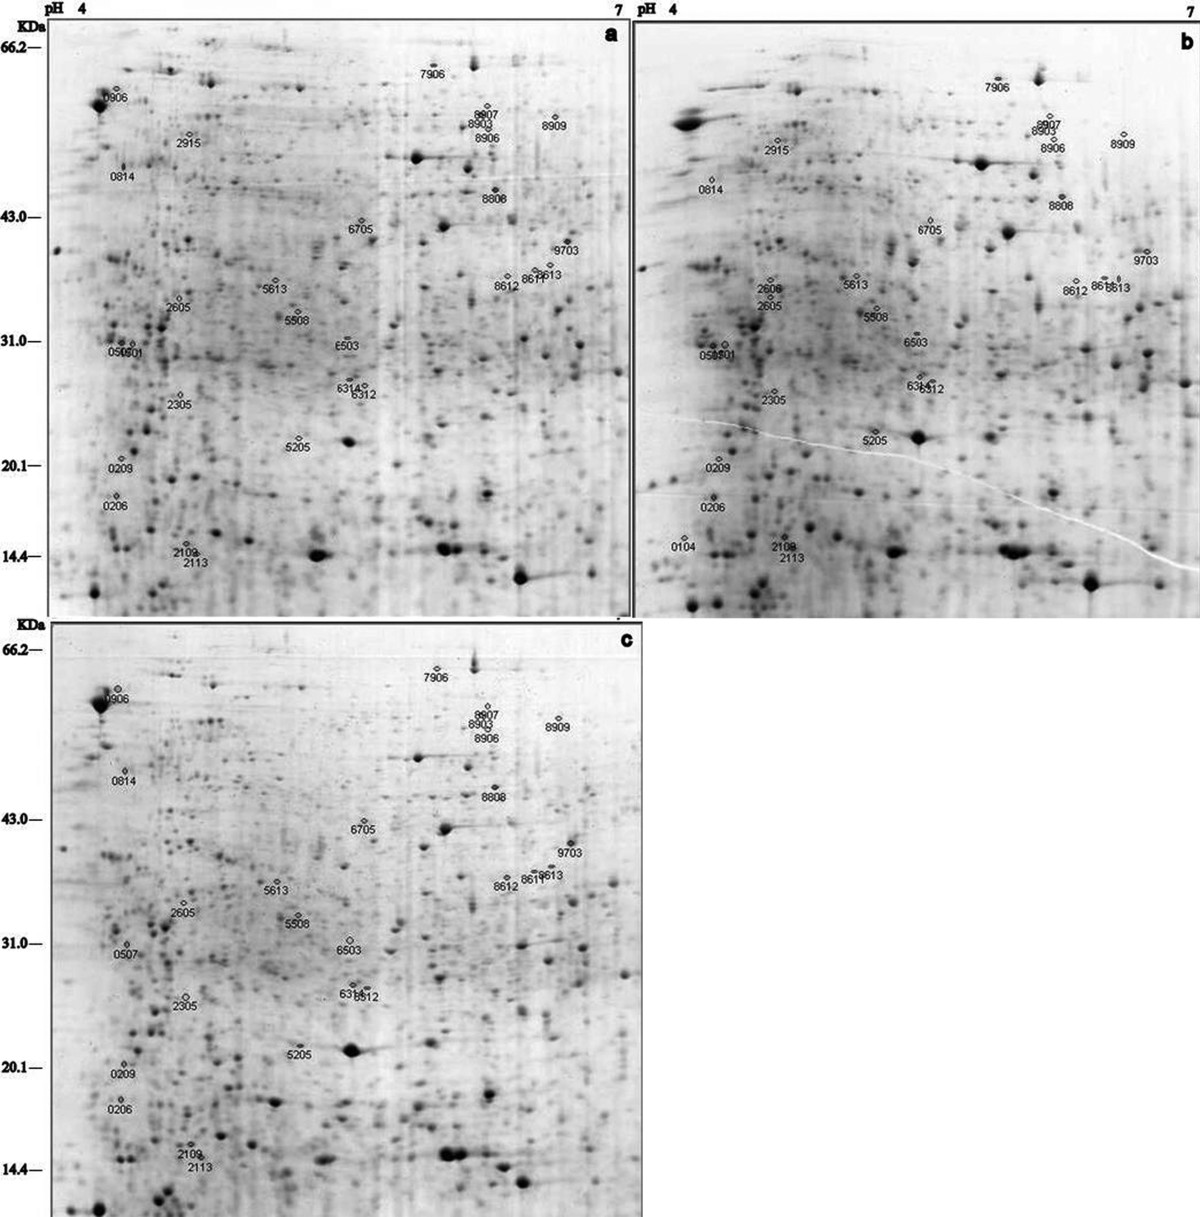 http://static-content.springer.com/image/art%3A10.1186%2F1477-5956-9-44/MediaObjects/12953_2011_Article_264_Fig3_HTML.jpg